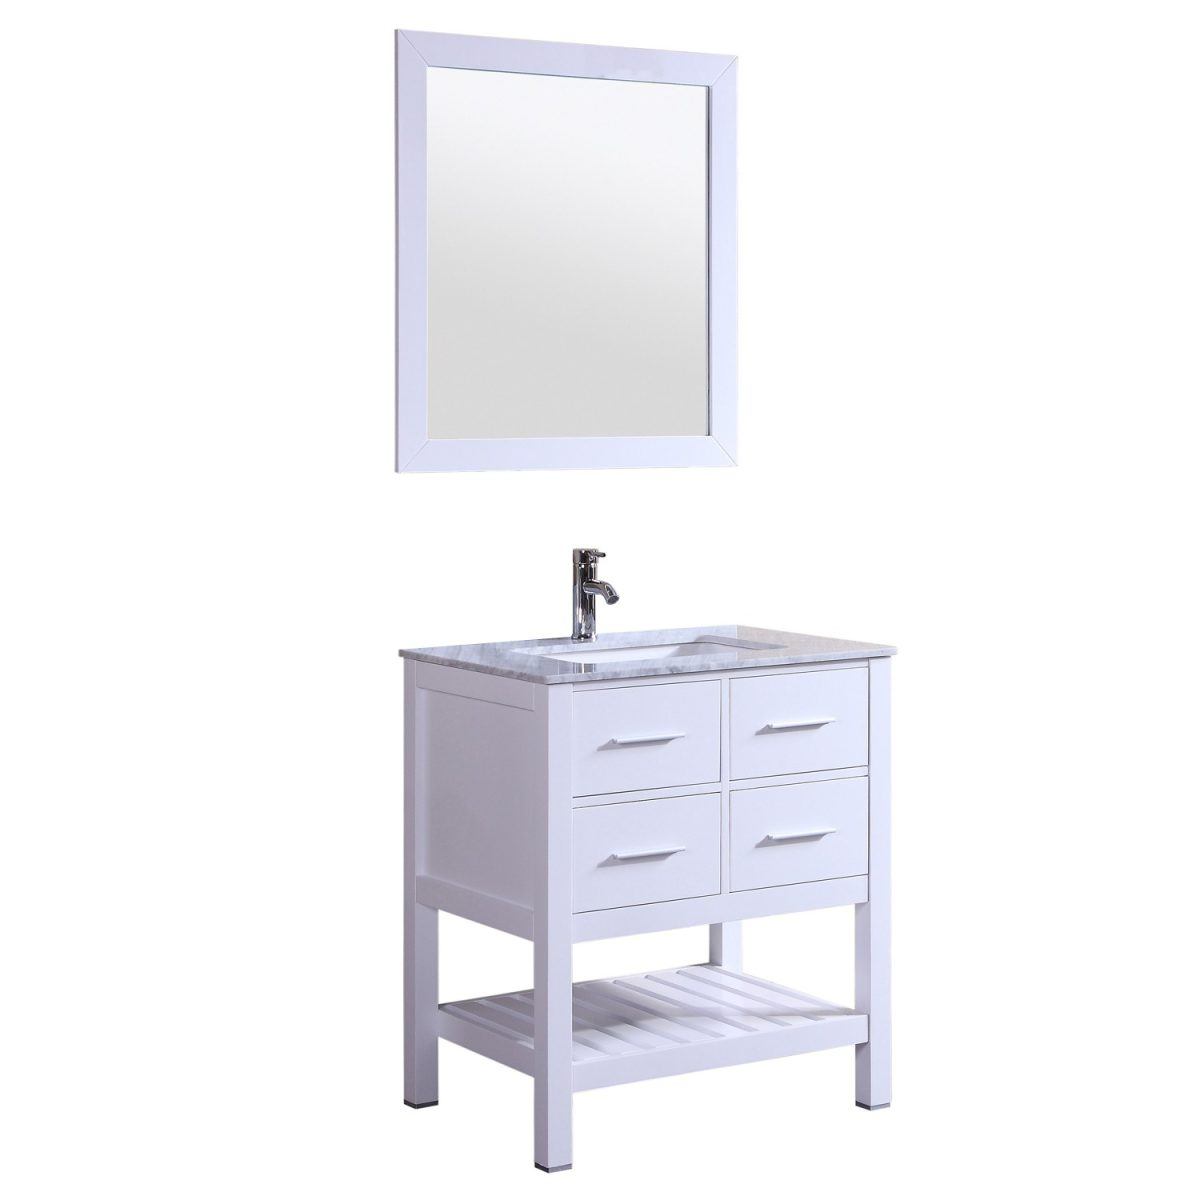 Eviva Natalie 30 inch White Bathroom Vanity with White Jazz Marble Counter-Top